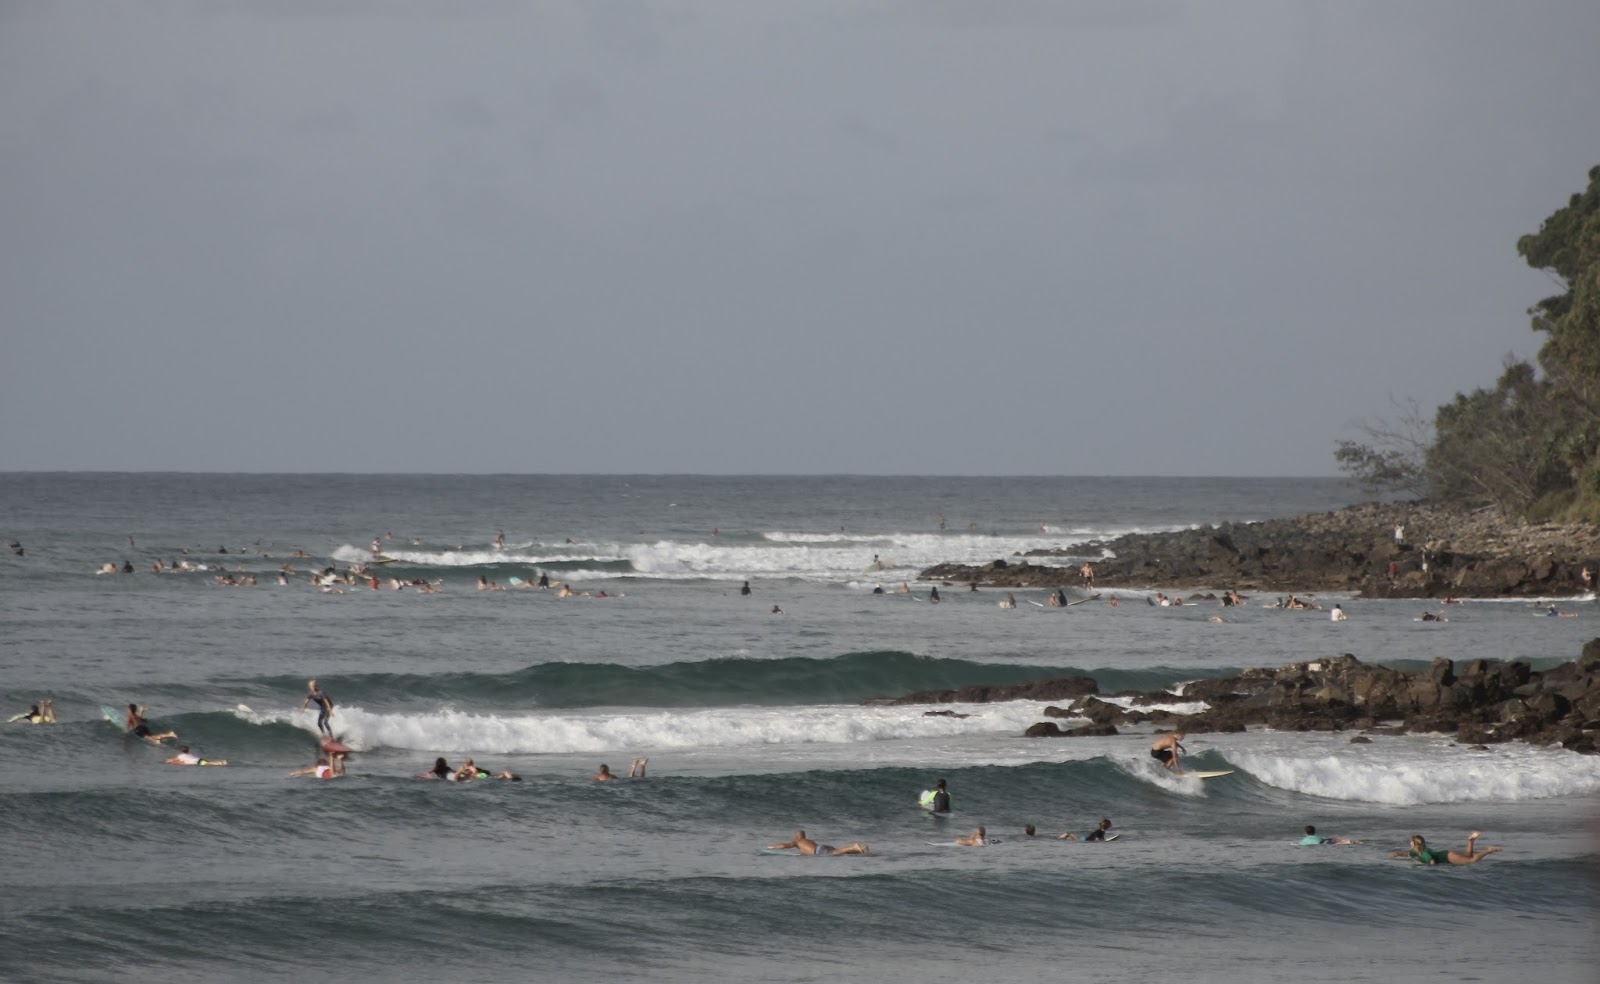 11-03-2016-australia-siebert-surfboards-21